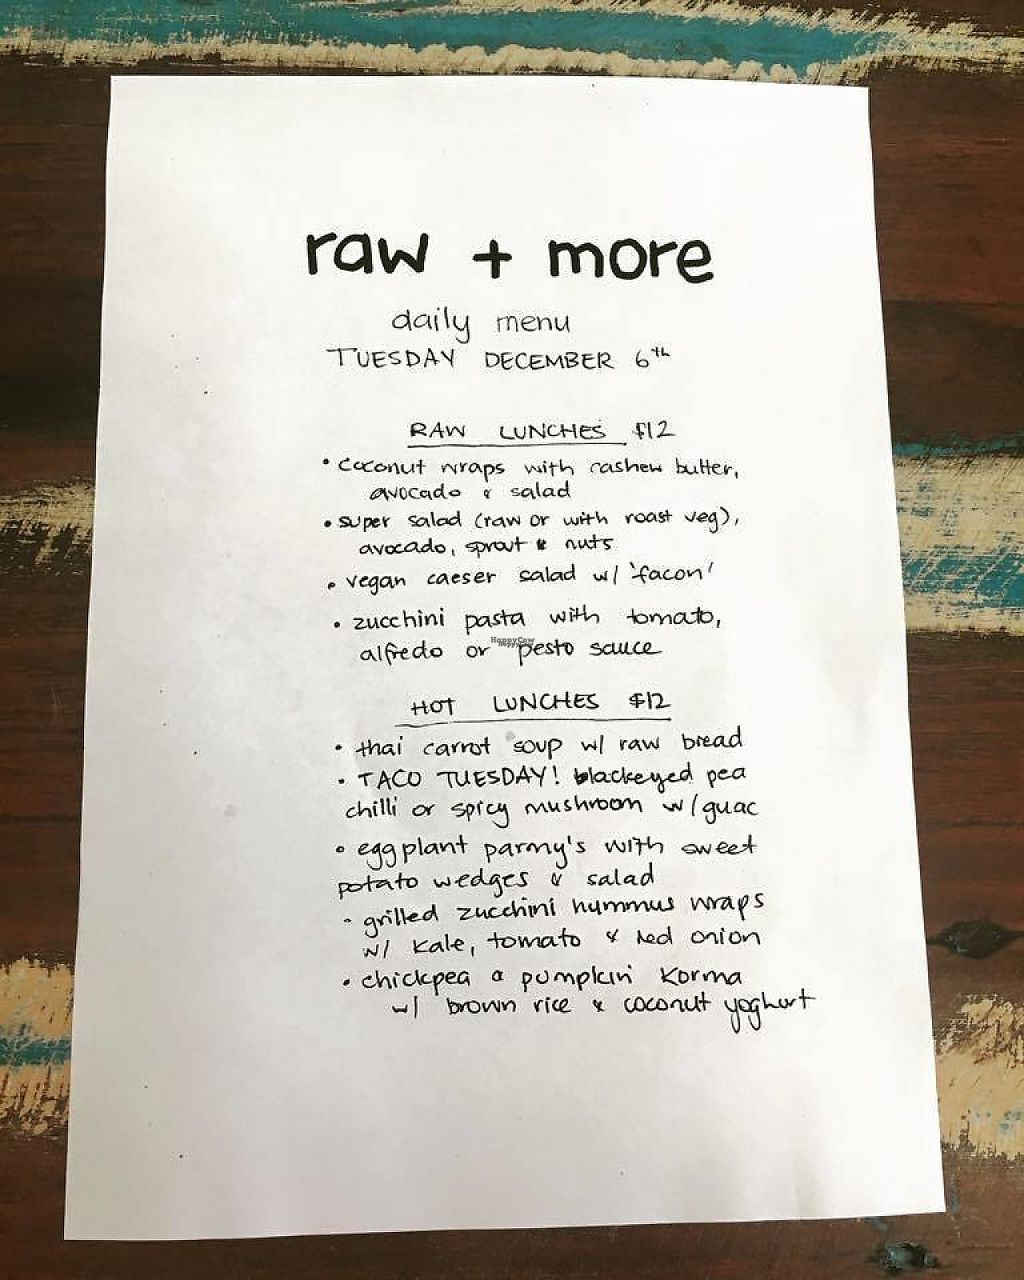 """Photo of Raw + More Cafe  by <a href=""""/members/profile/pb1987"""">pb1987</a> <br/>sample of the lunch menu, which changes daily <br/> December 8, 2016  - <a href='/contact/abuse/image/76225/198199'>Report</a>"""